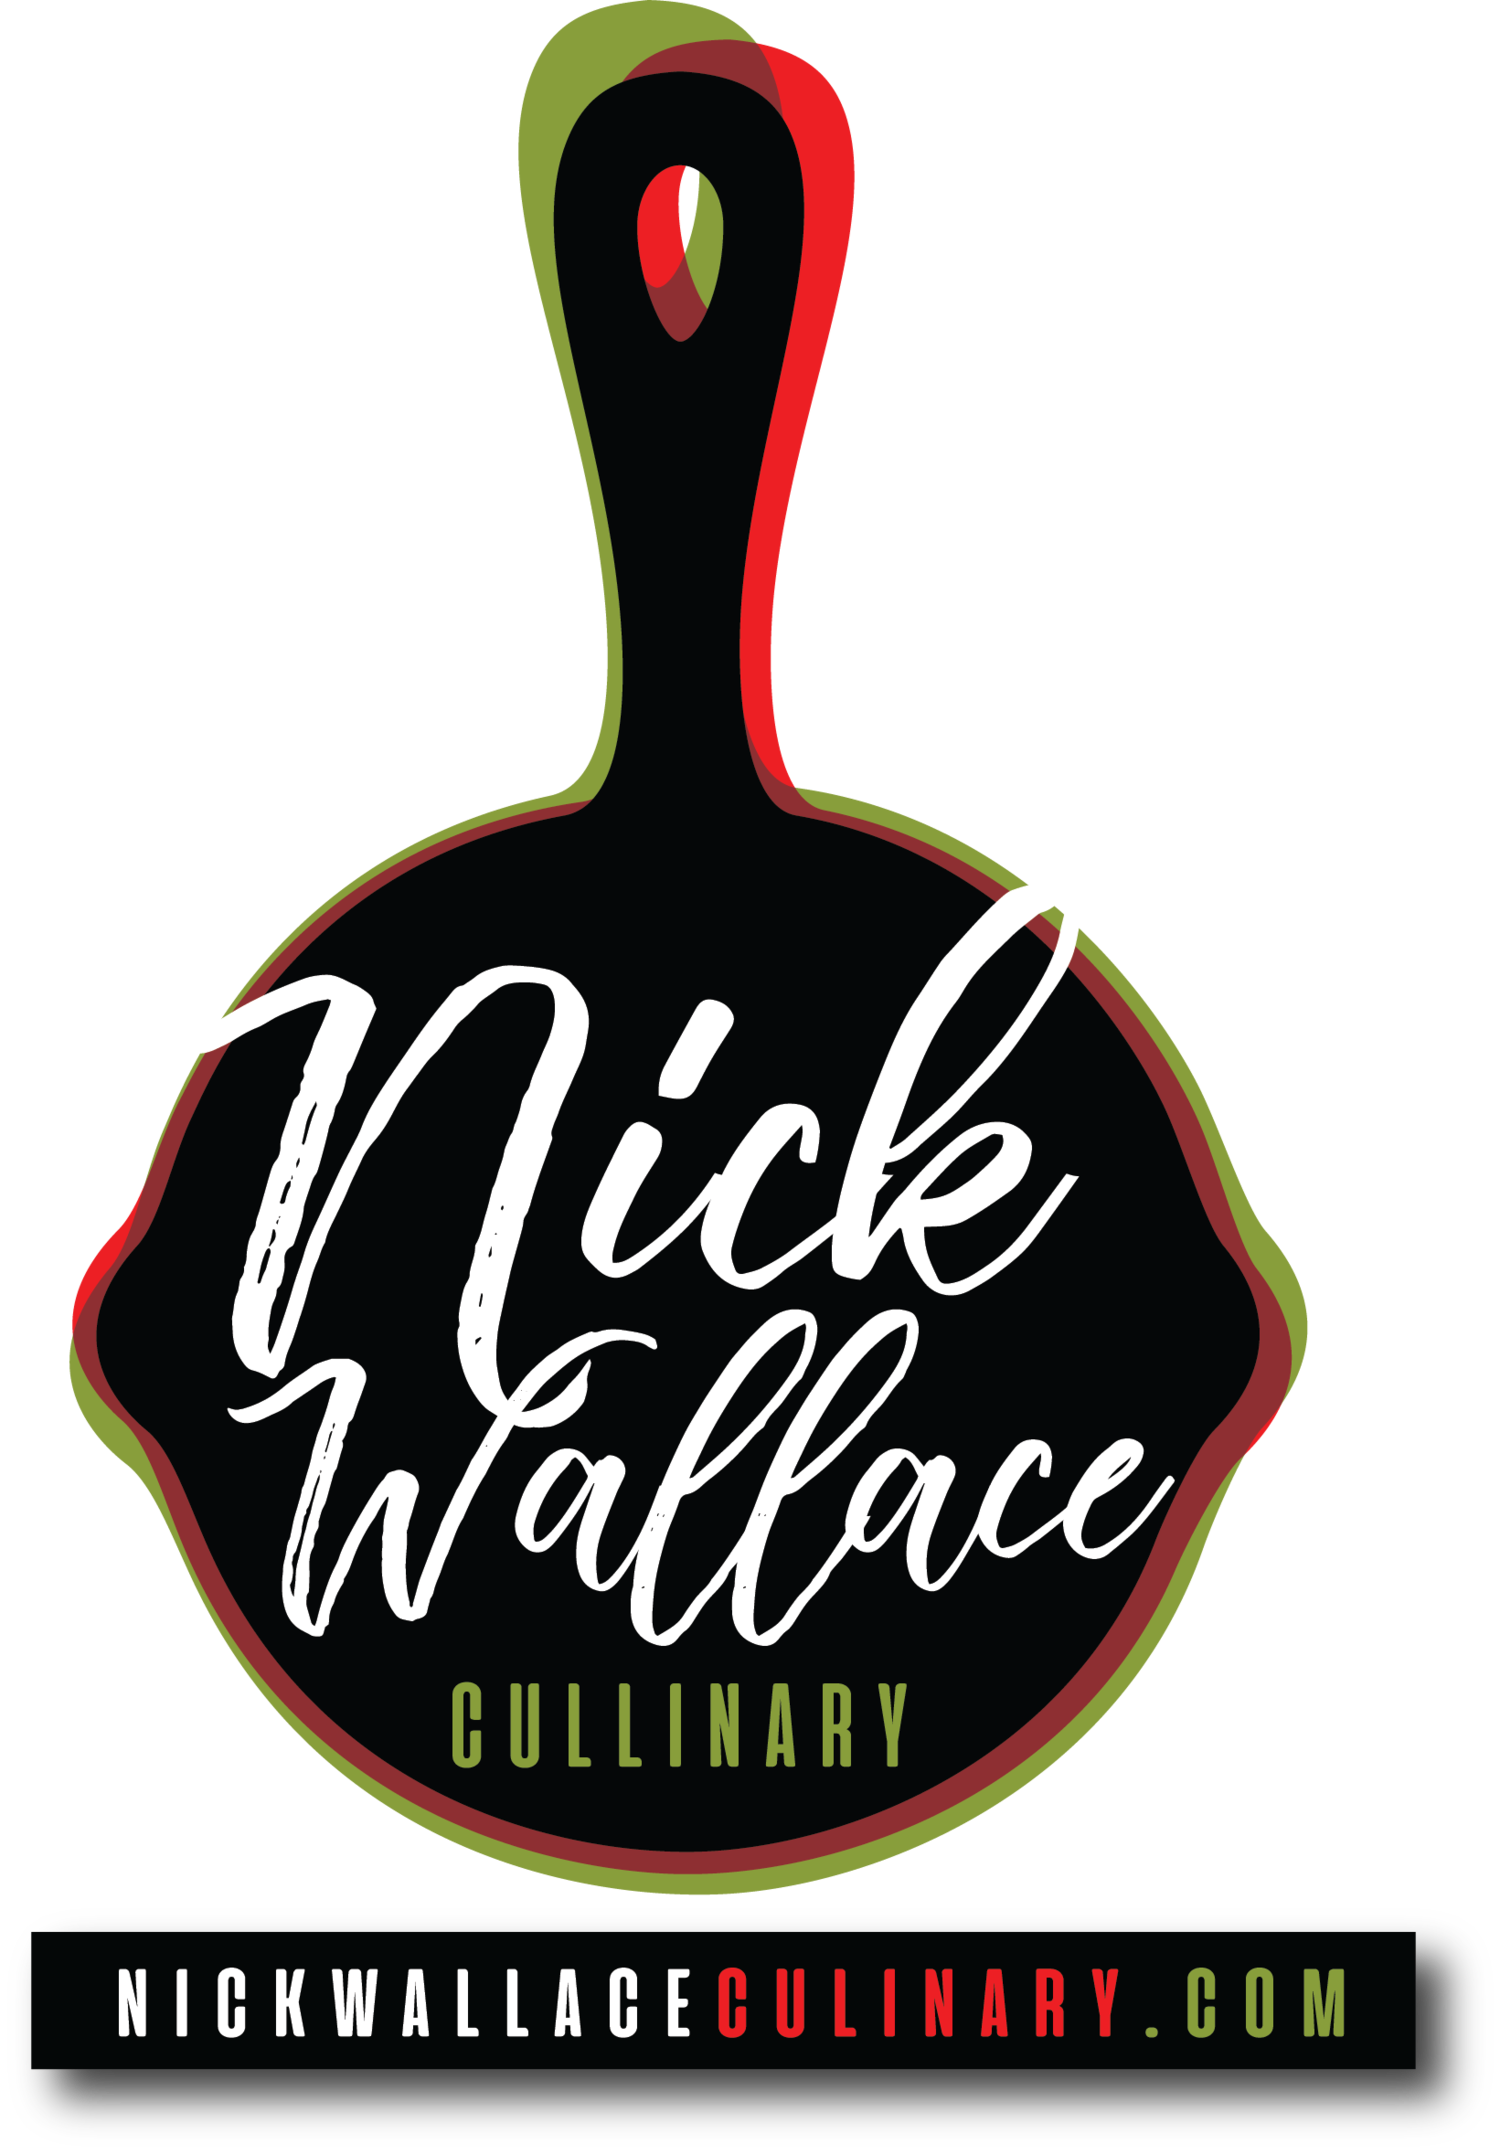 Nick Wallace Culinary